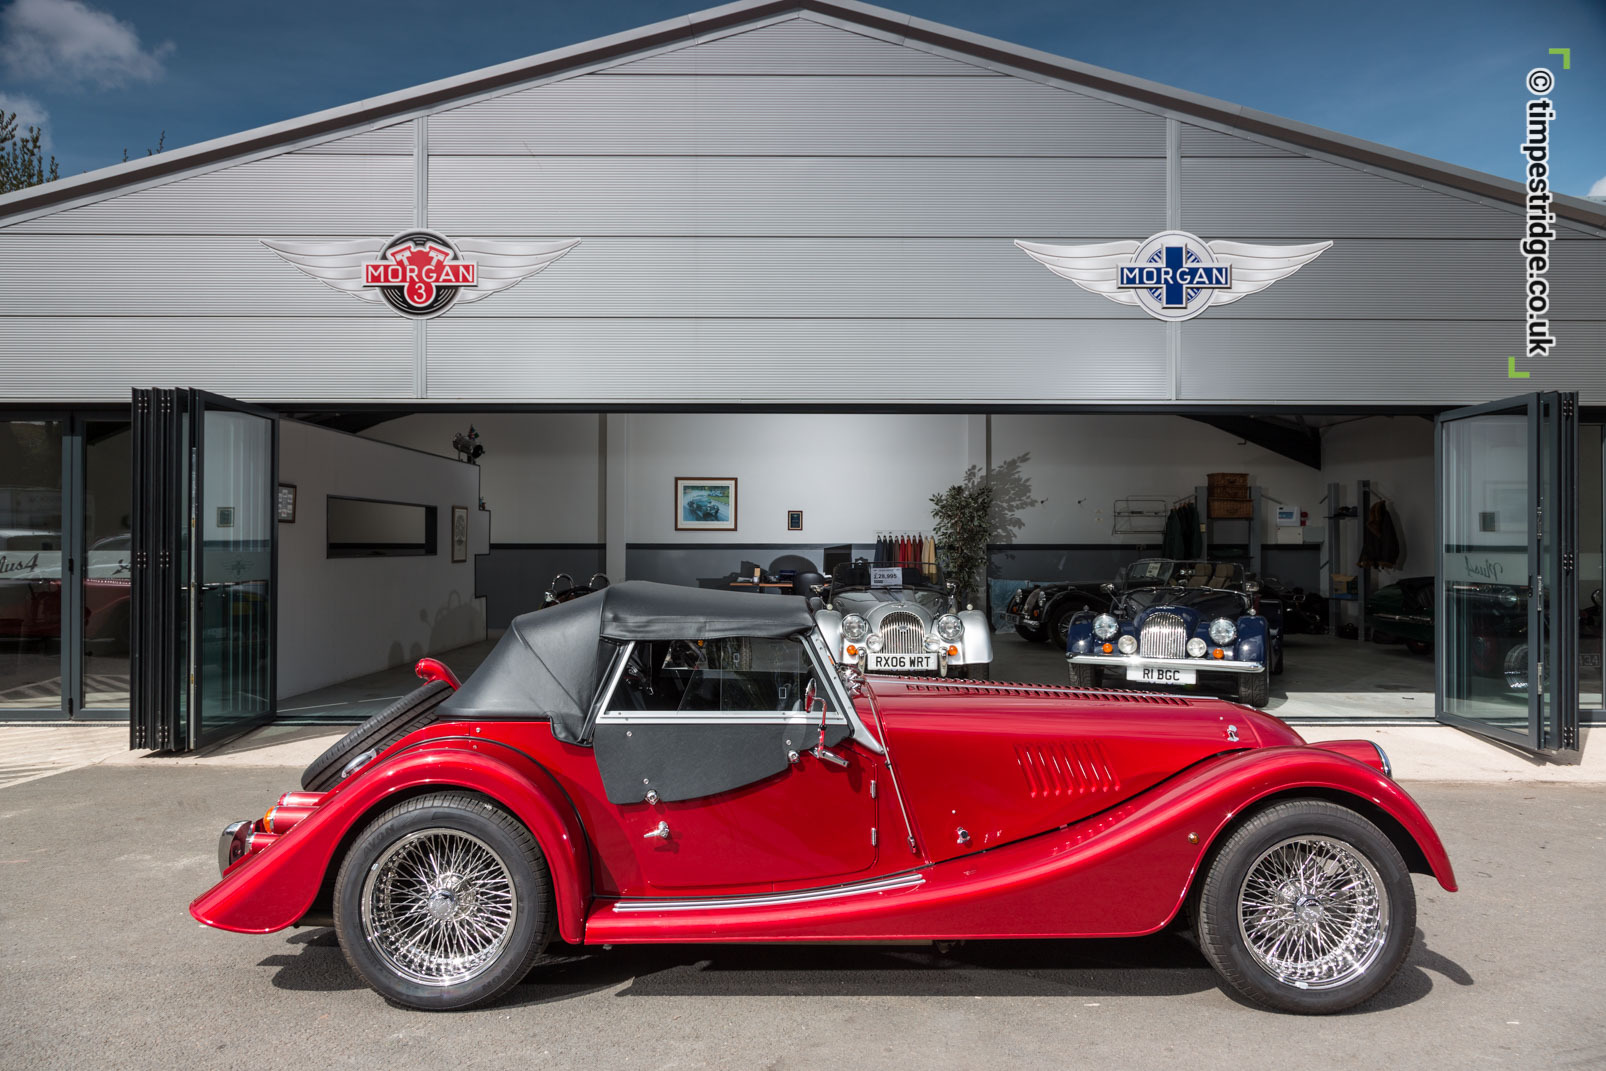 Berrybrook Morgan classic car photo shoot